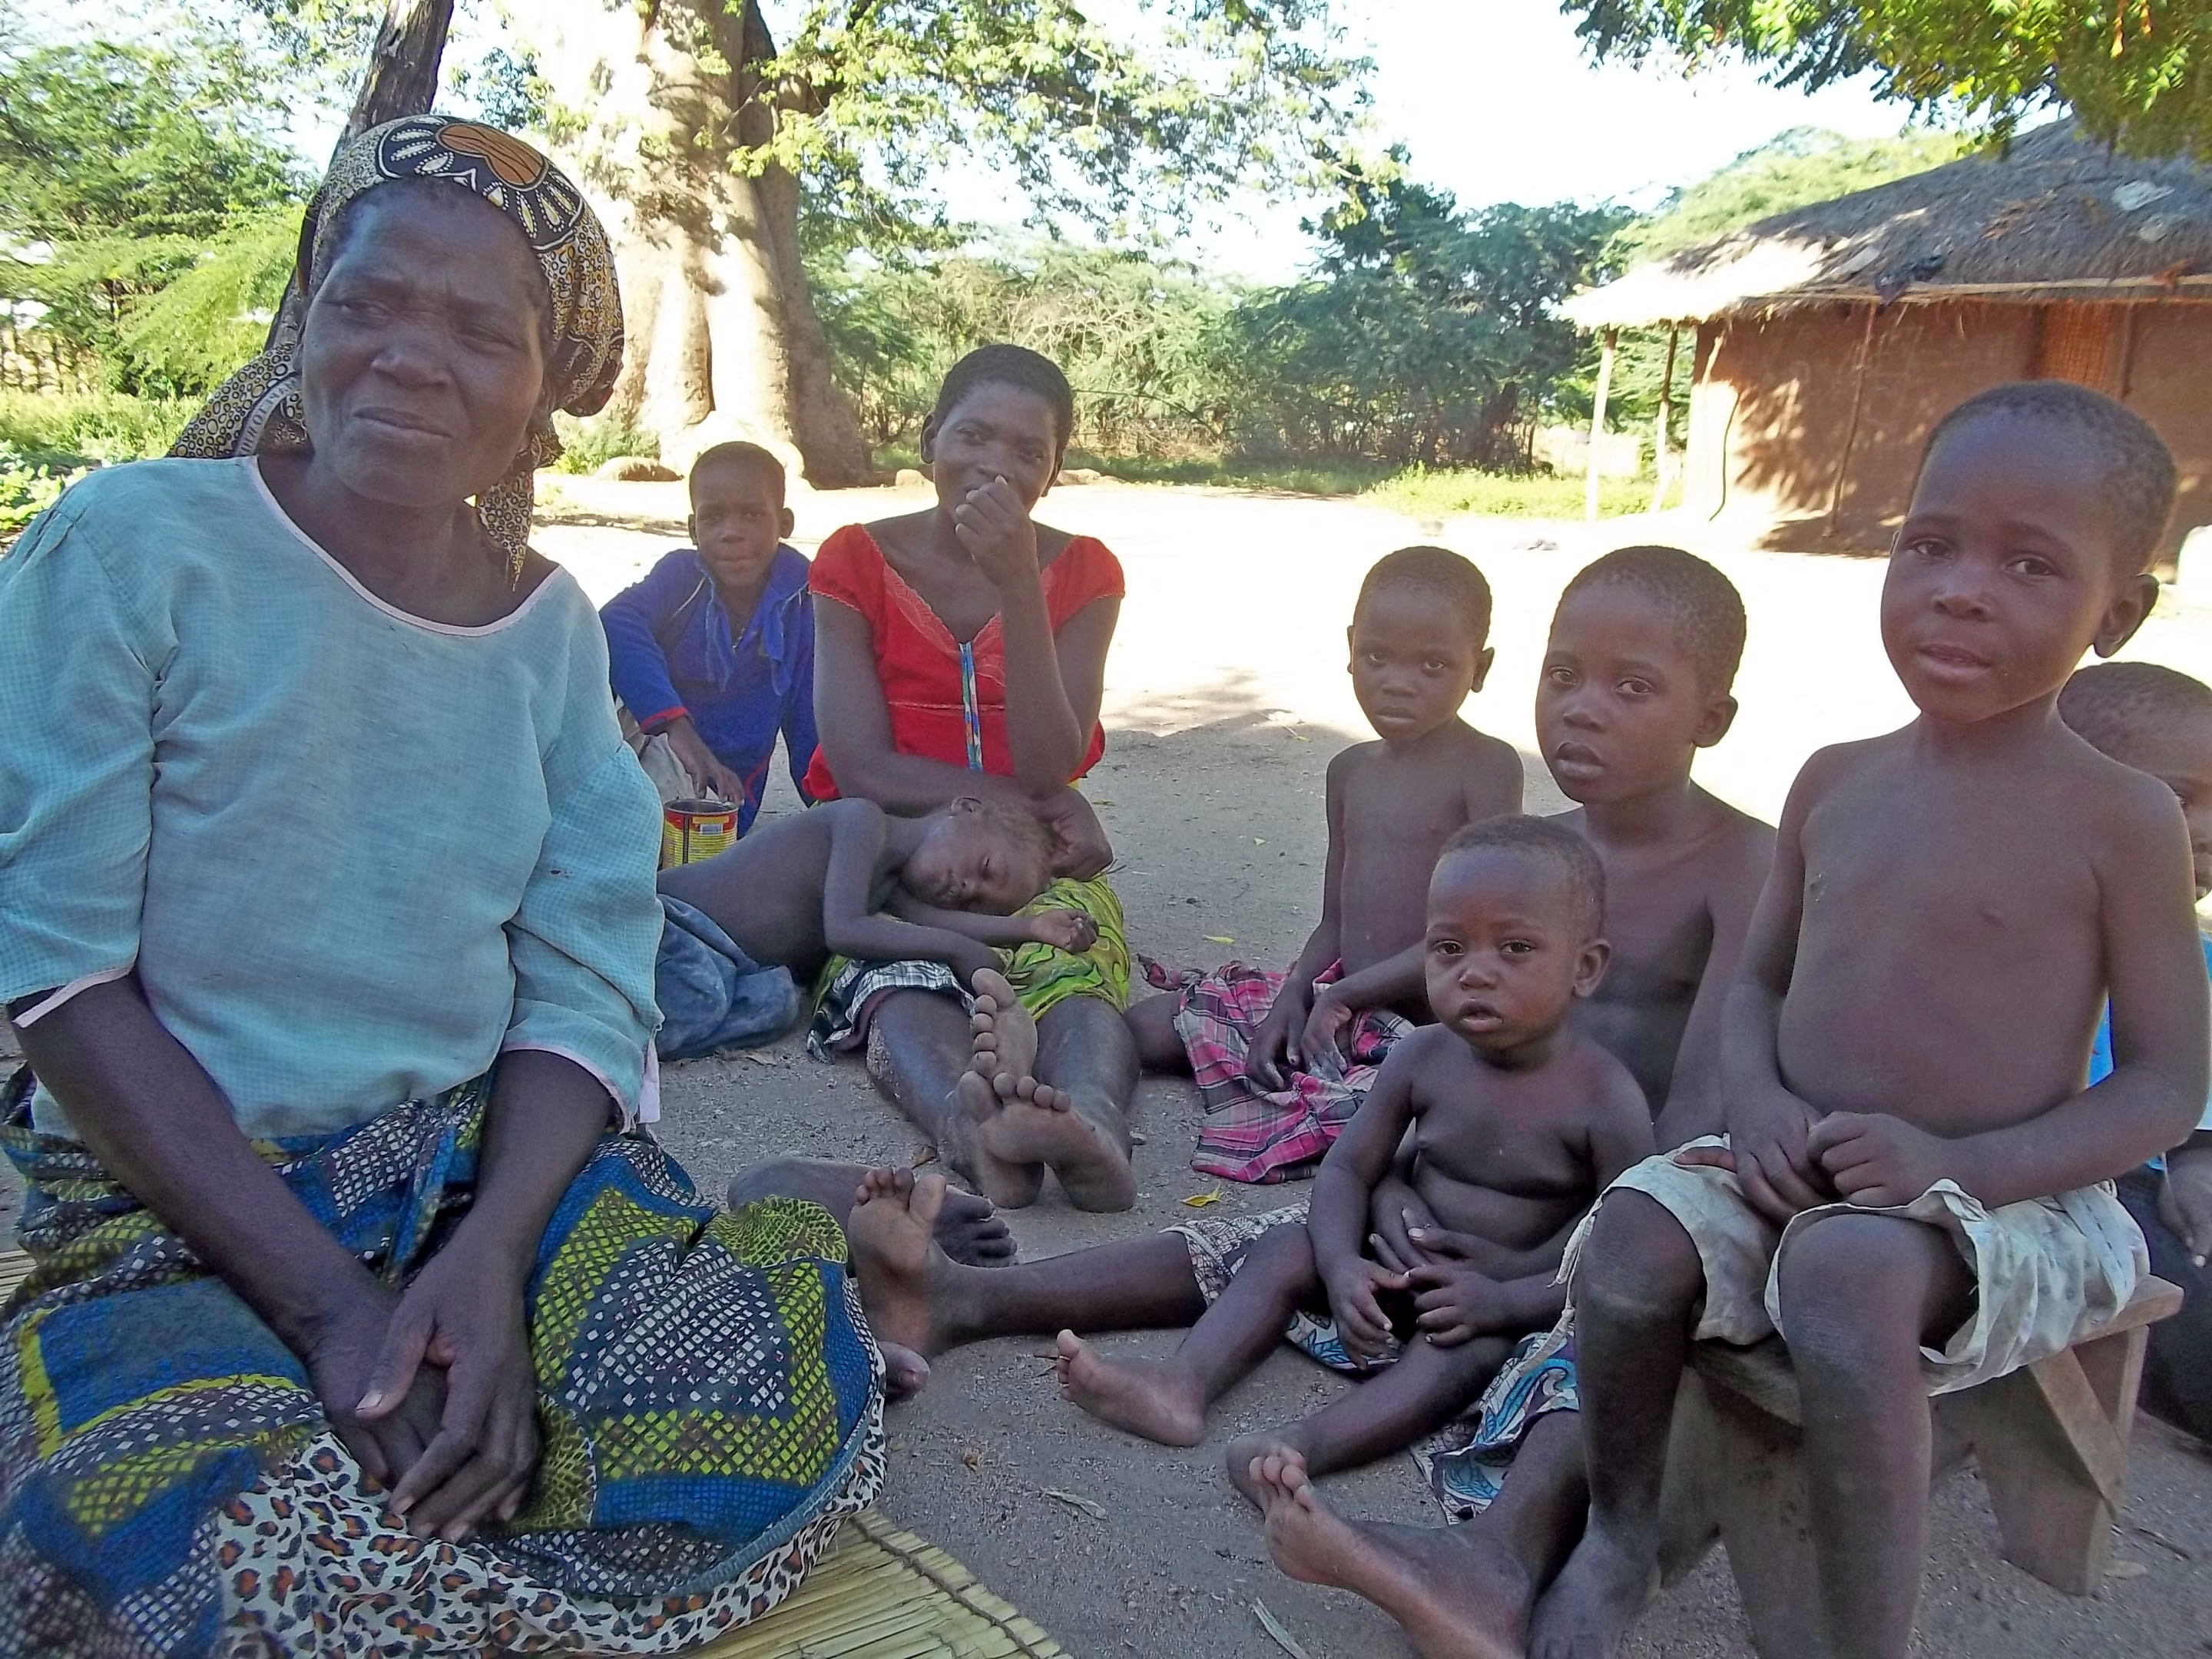 Fales Stesha and her family of 10 from the village of Konzere in southern Malawi's Chikhwawa district, are surviving on occasional piece work following the failure of their crops. Her grandchildren are listless and sickly from lack of food